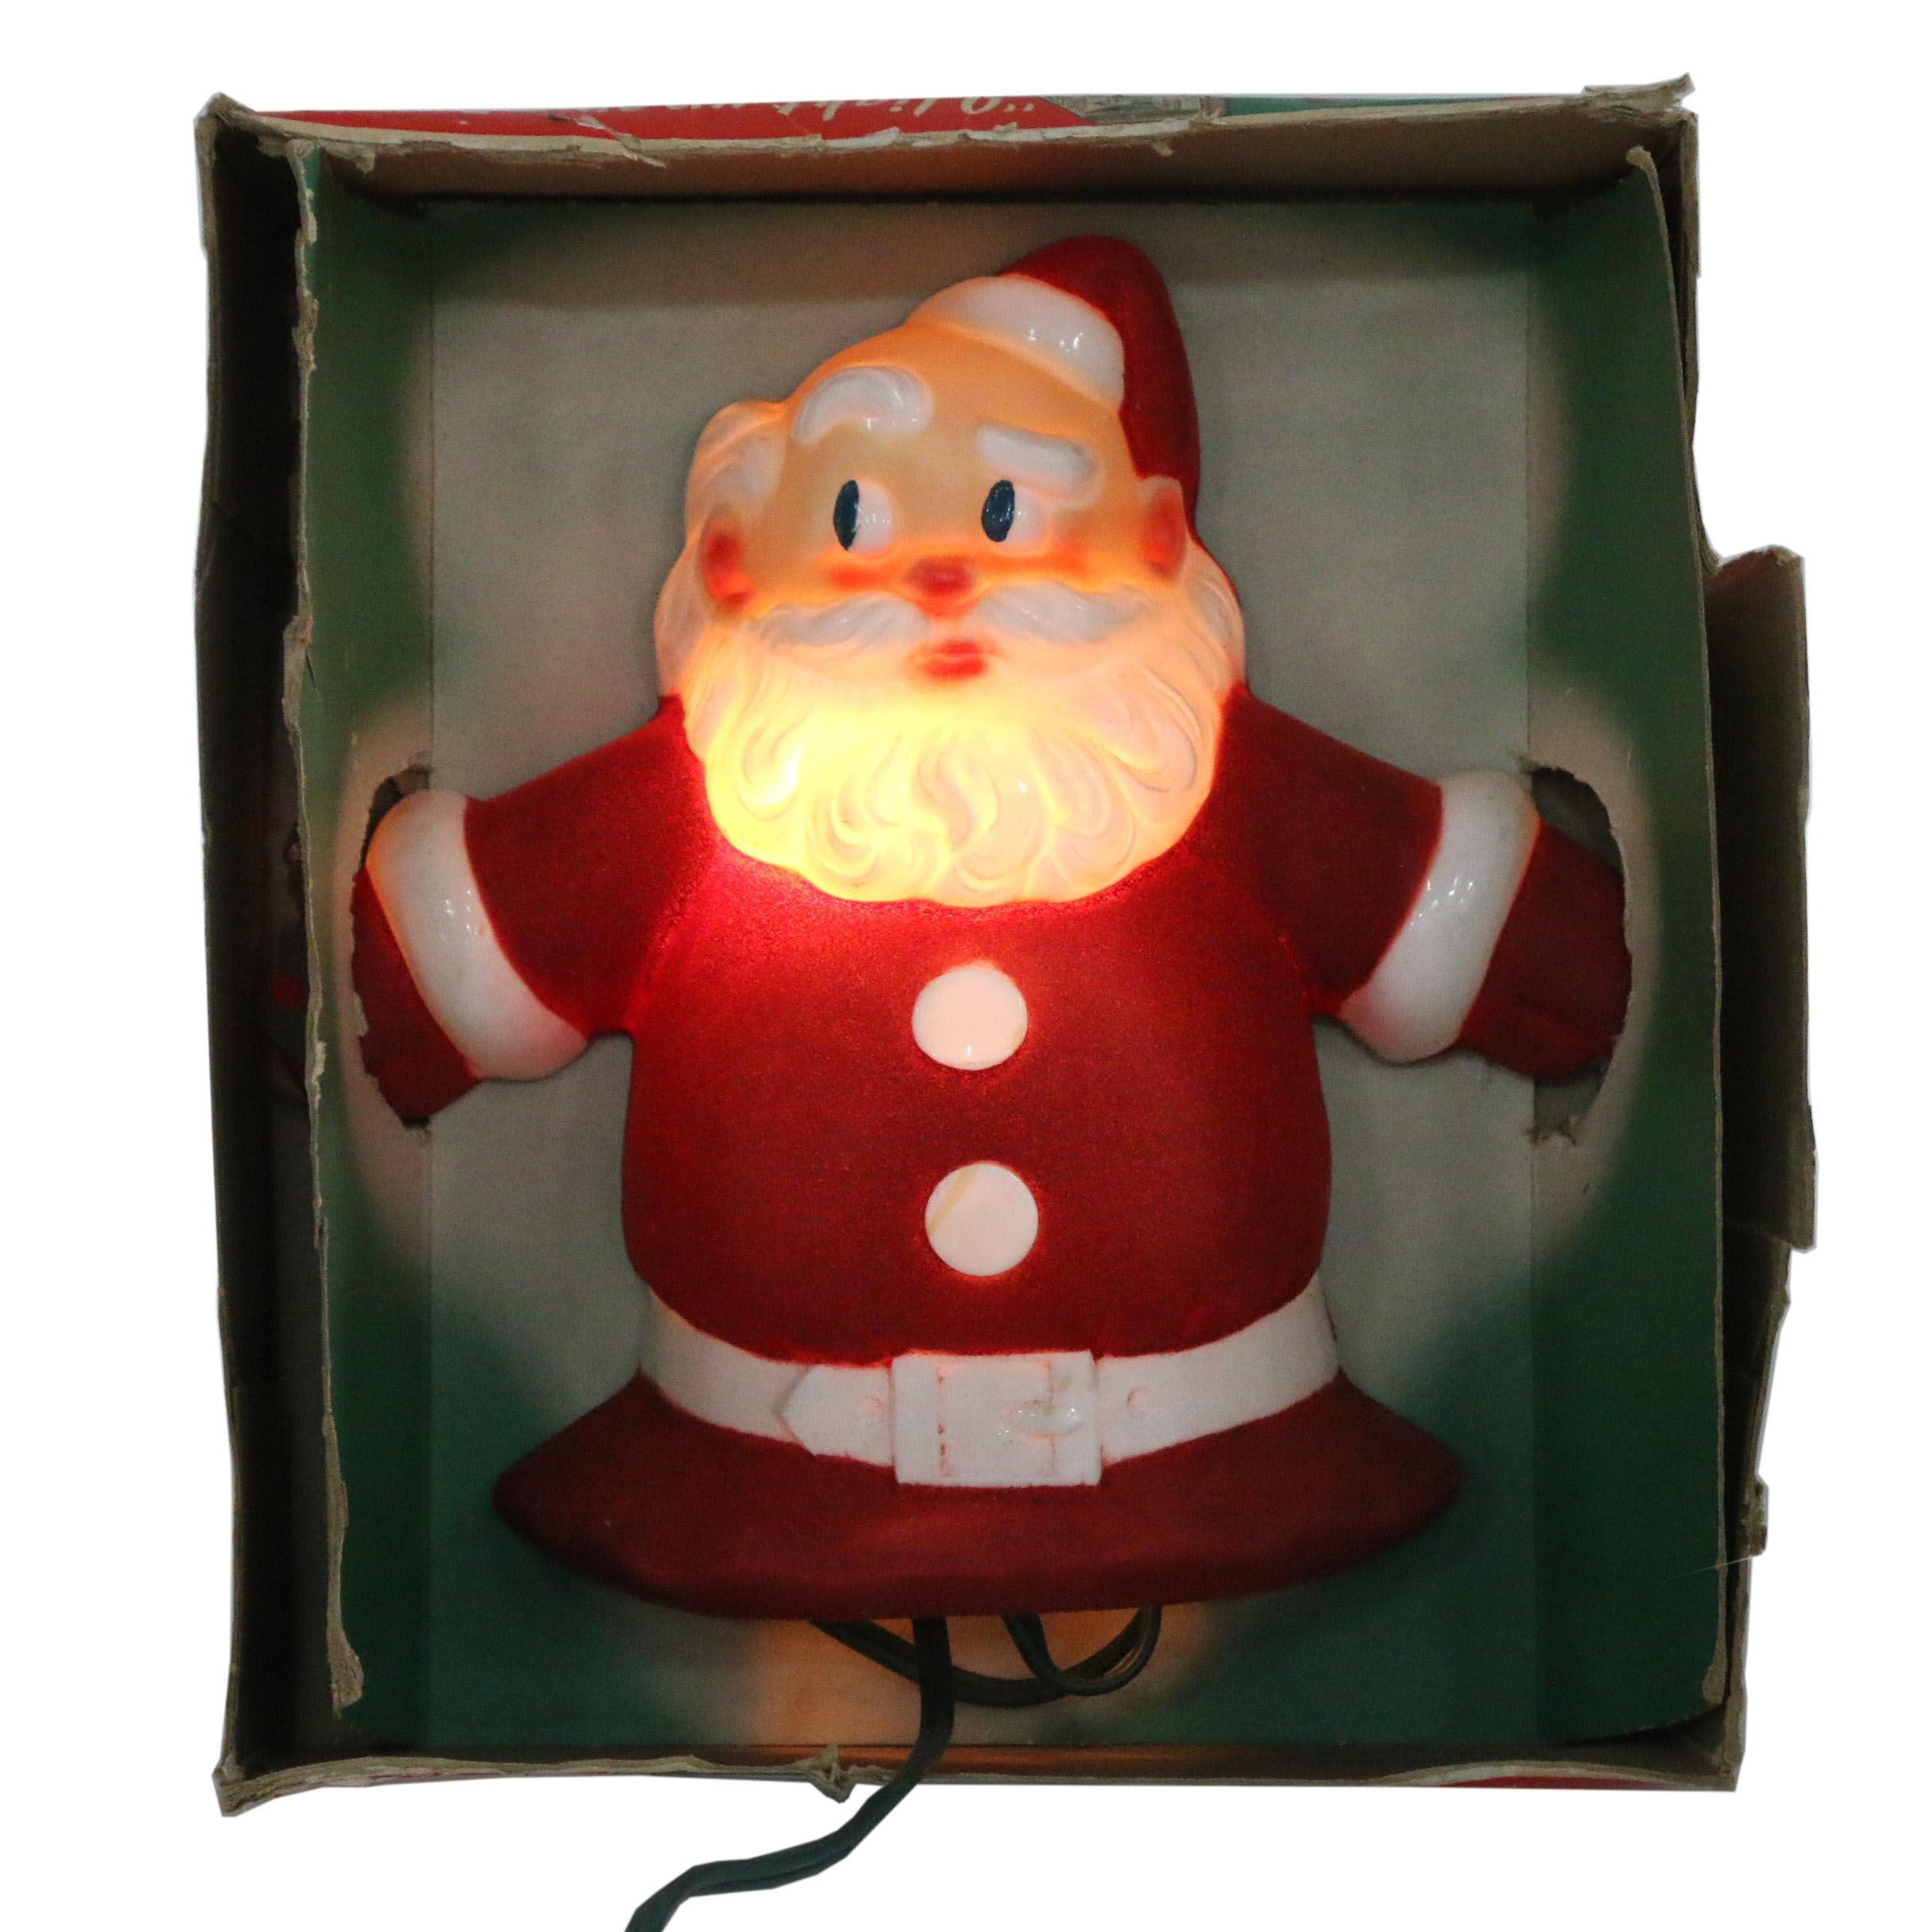 Santa-Glo Light-Up Christmas Tree Topper/Wall Plaque from Glolite Corp., c.1940s